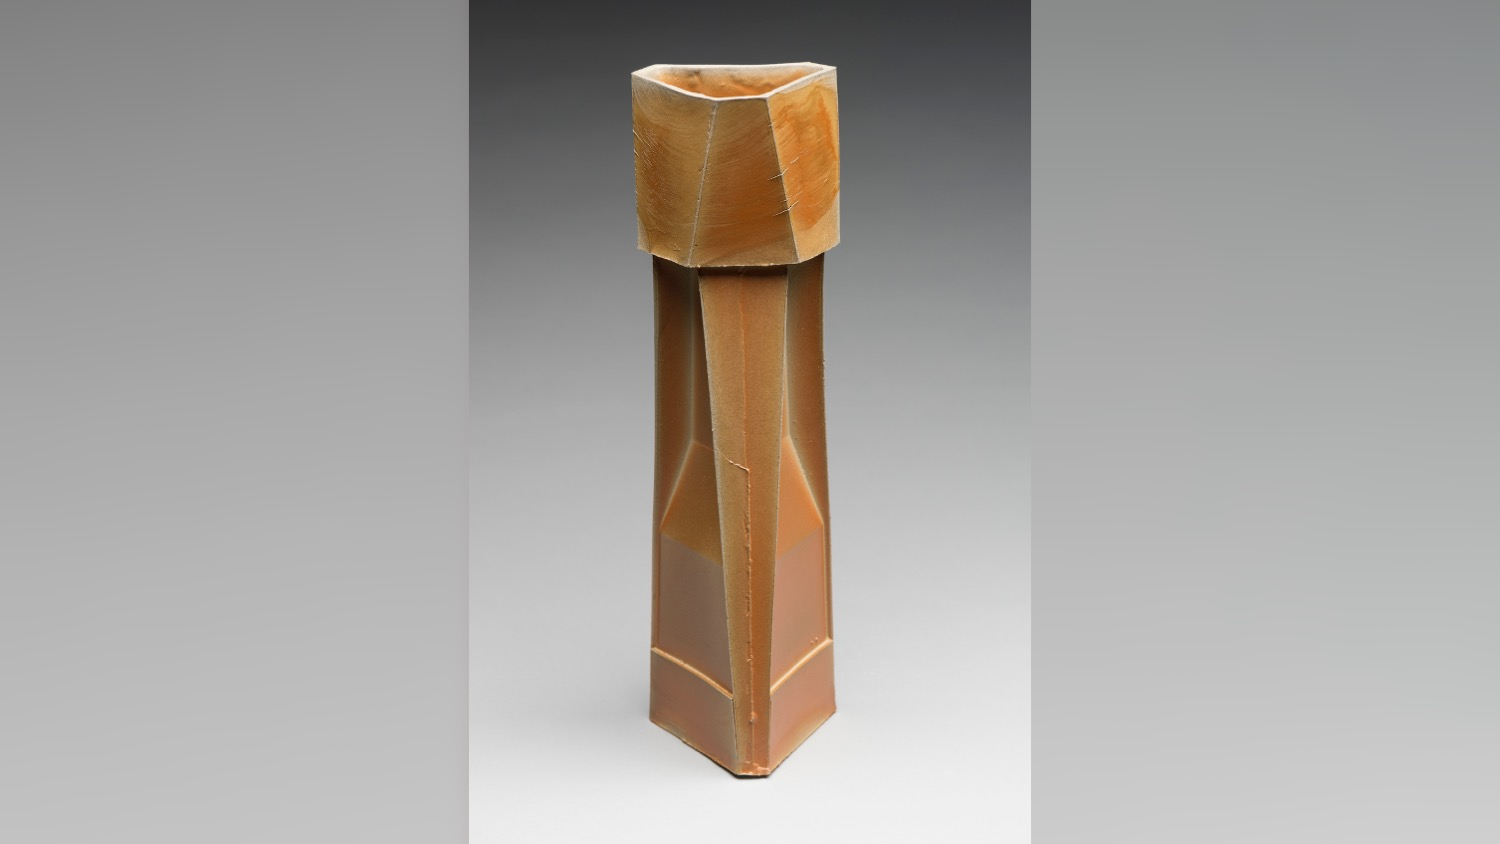 A tall wooden sculpture inspired by industrial architecture.